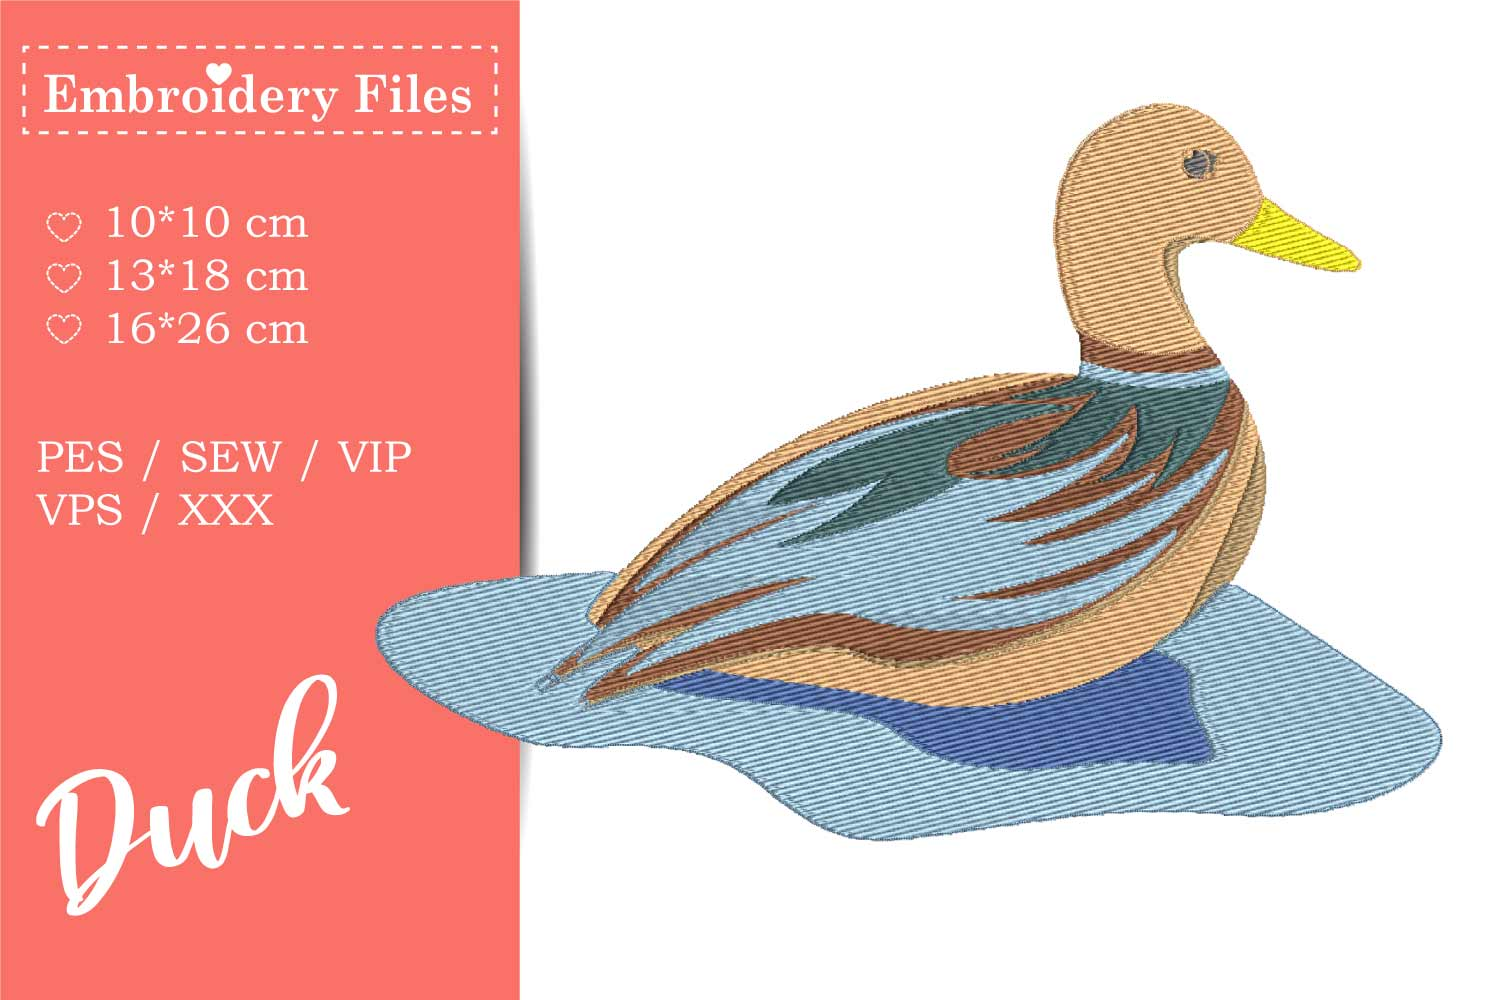 A cute Duck - Embroidery File for Beginners example image 2